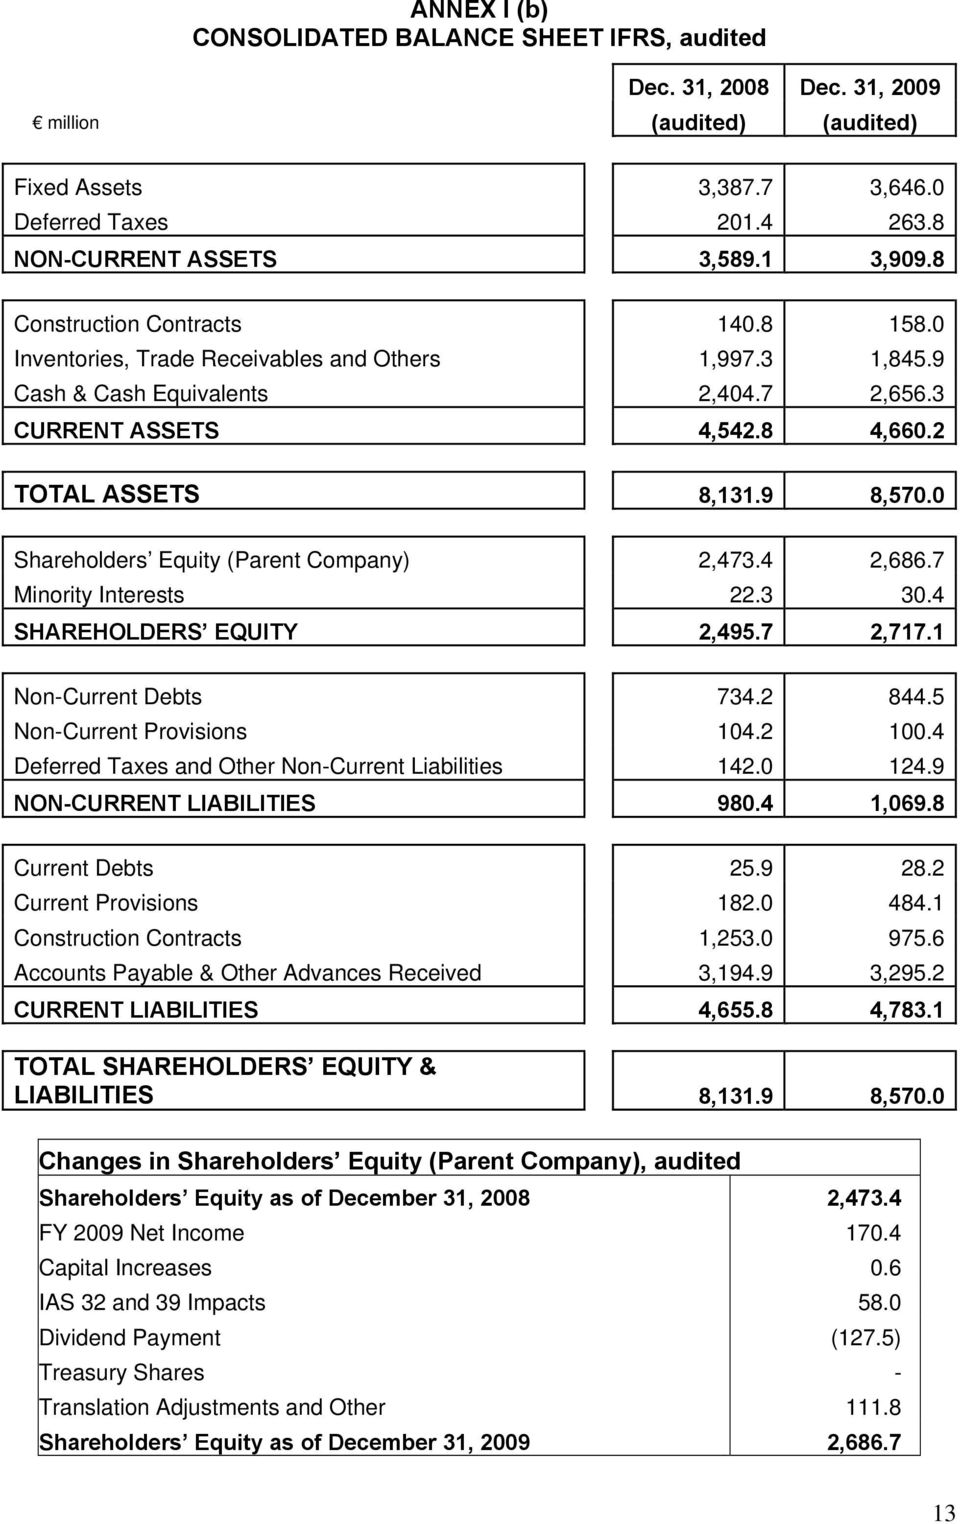 0 Shareholders Equity (Parent Company) 2,473.4 2,686.7 Minority Interests 22.3 30.4 SHAREHOLDERS EQUITY 2,495.7 2,717.1 Non-Current Debts 734.2 844.5 Non-Current Provisions 104.2 100.